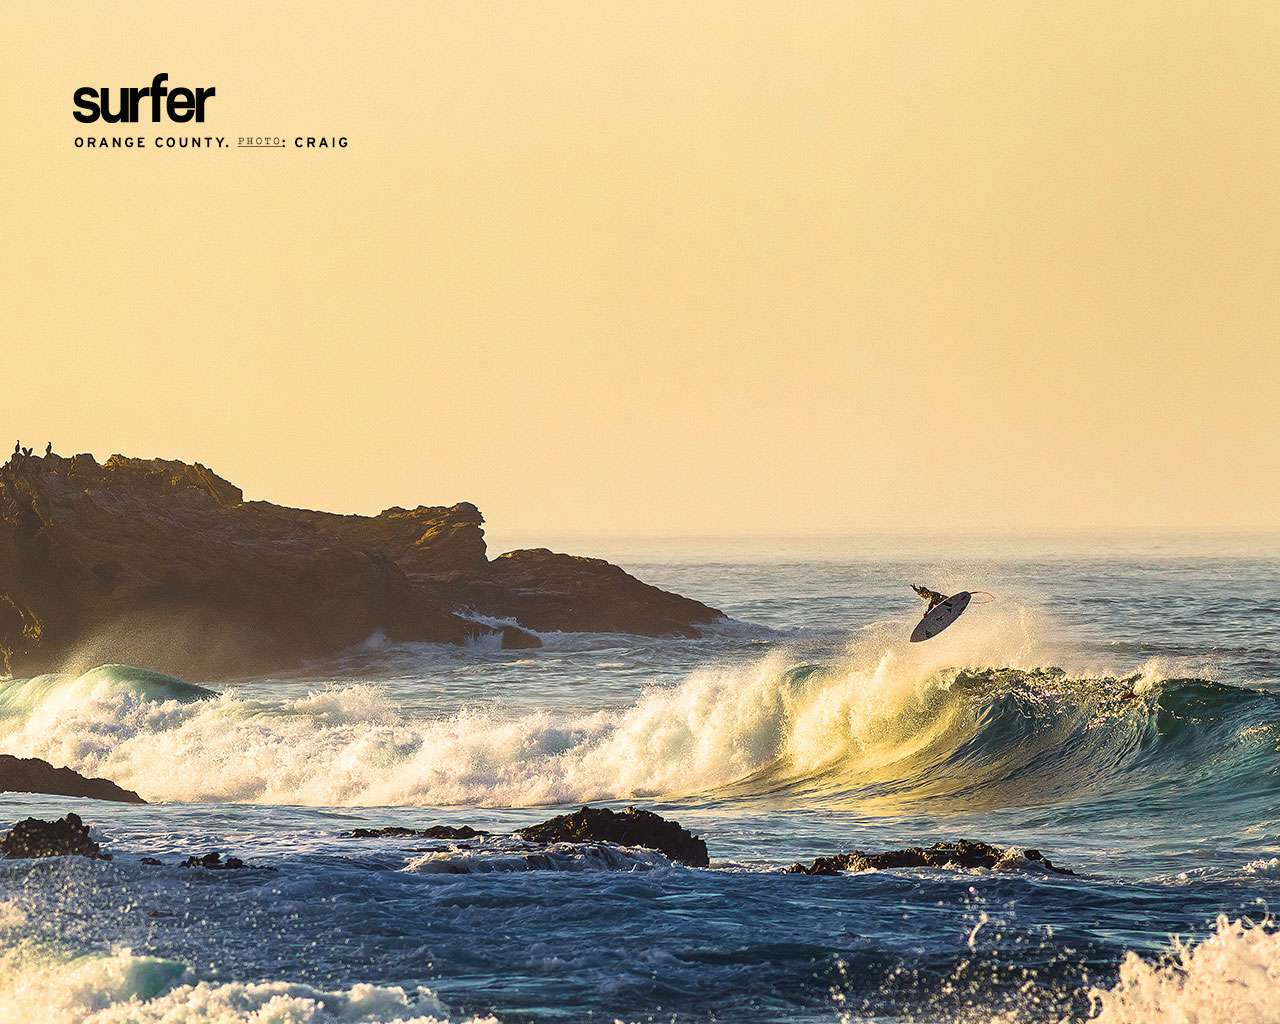 Free ocean wallpaper featuring a surfer in mid flip above a wave near rocks and cliffs